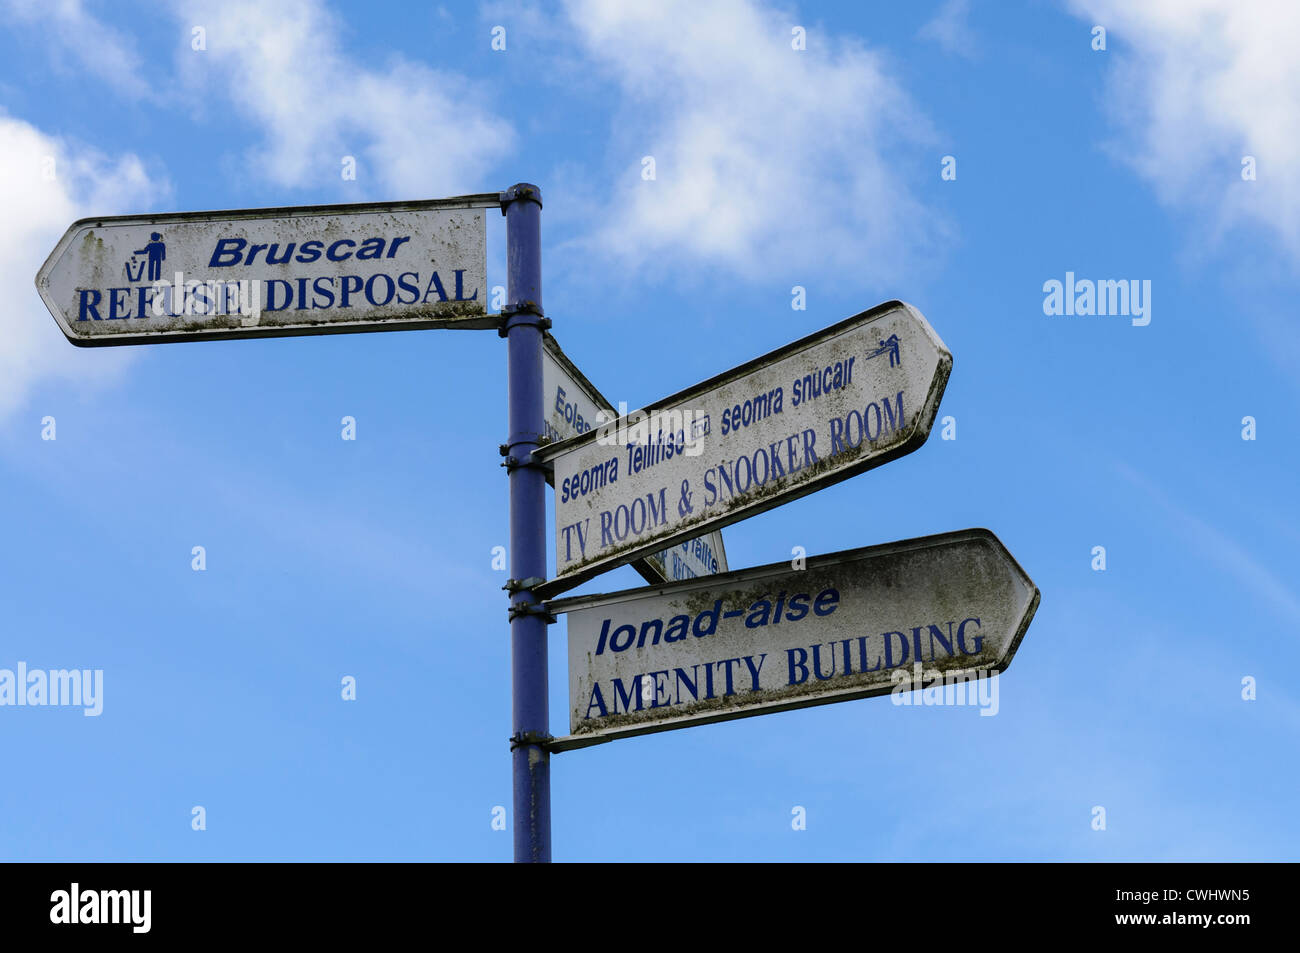 Bilingual signs in Irish Gaelic and English at an abandoned adventure centre/outdoor pursuits hotel. - Stock Image